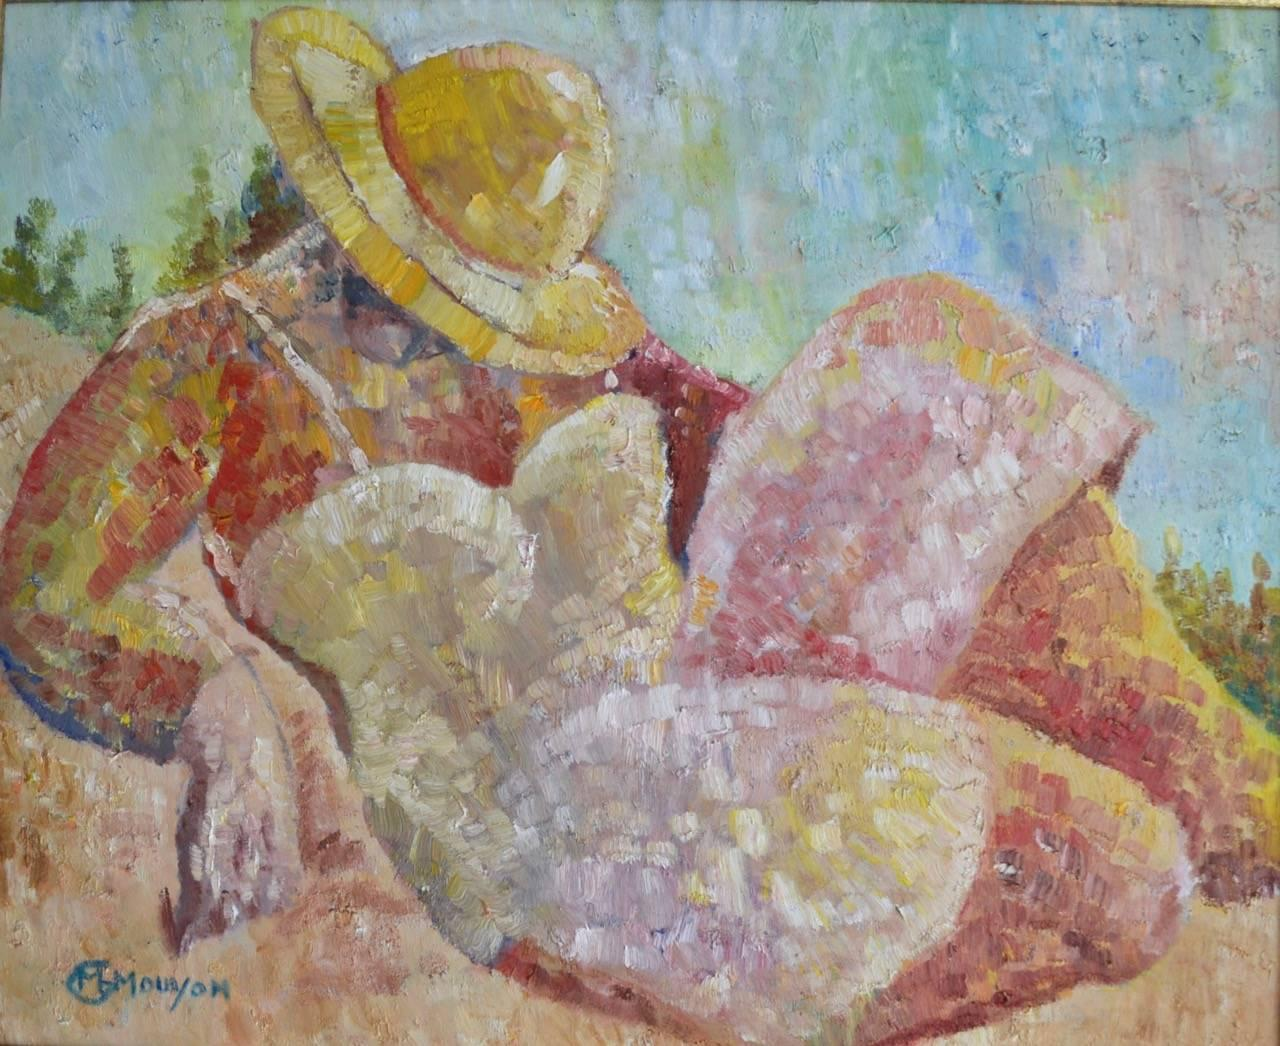 Riviera. French Contemporary Figurative Oil Painting